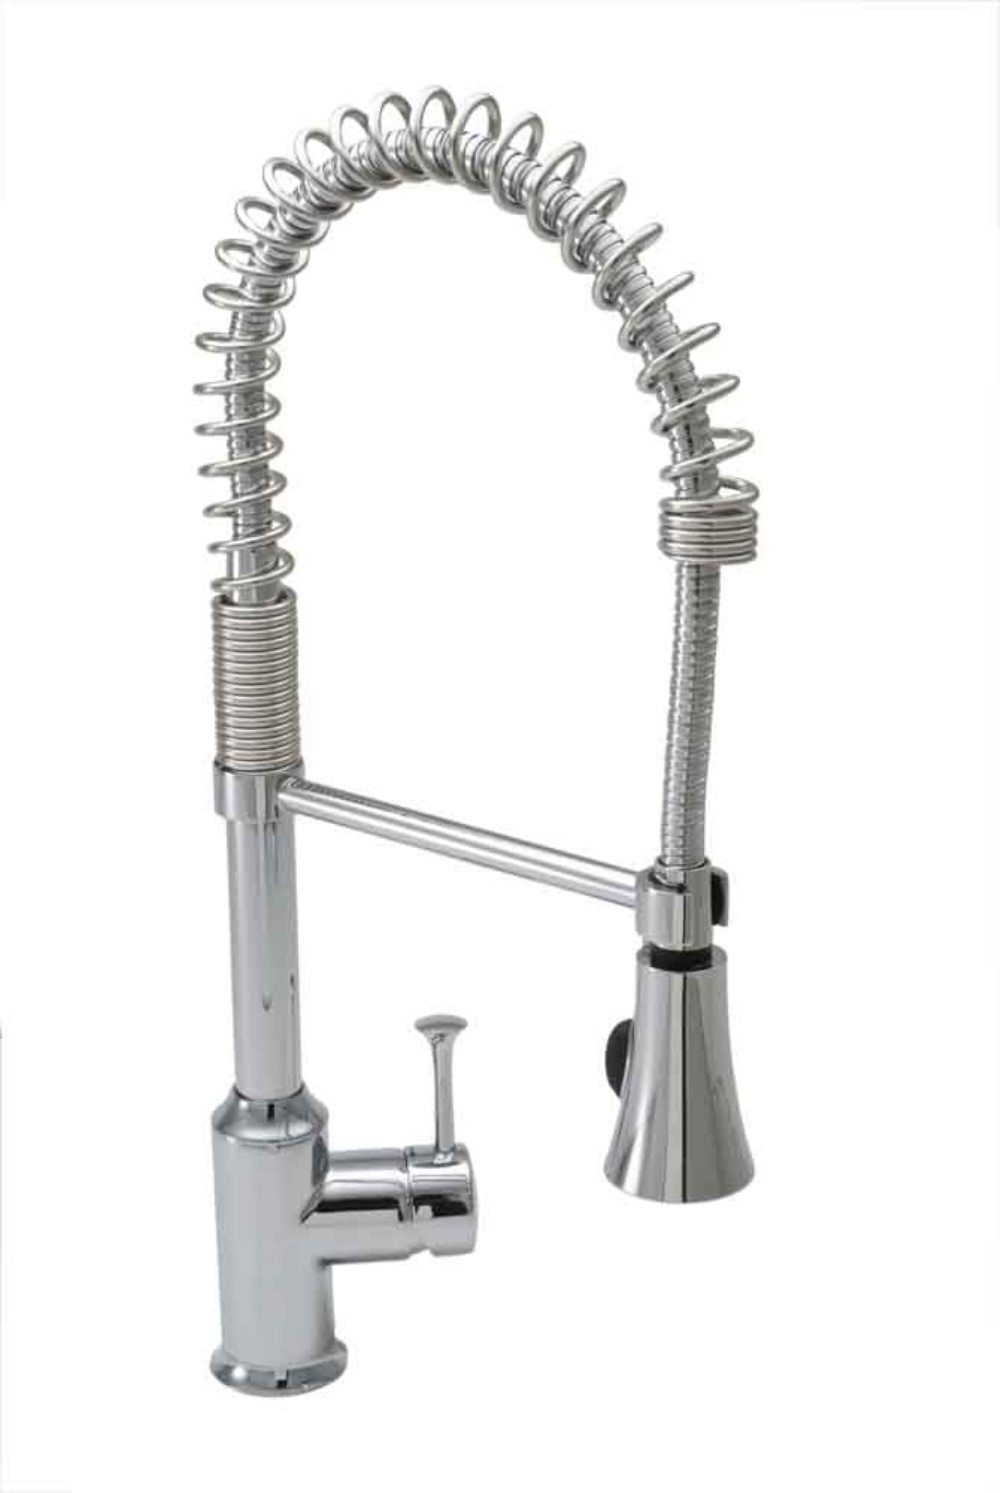 American Standard 4332.350.002 Polished Chrome Pekoe Semi Professional  Pre Rinse Kitchen Faucet   FaucetDirect.com